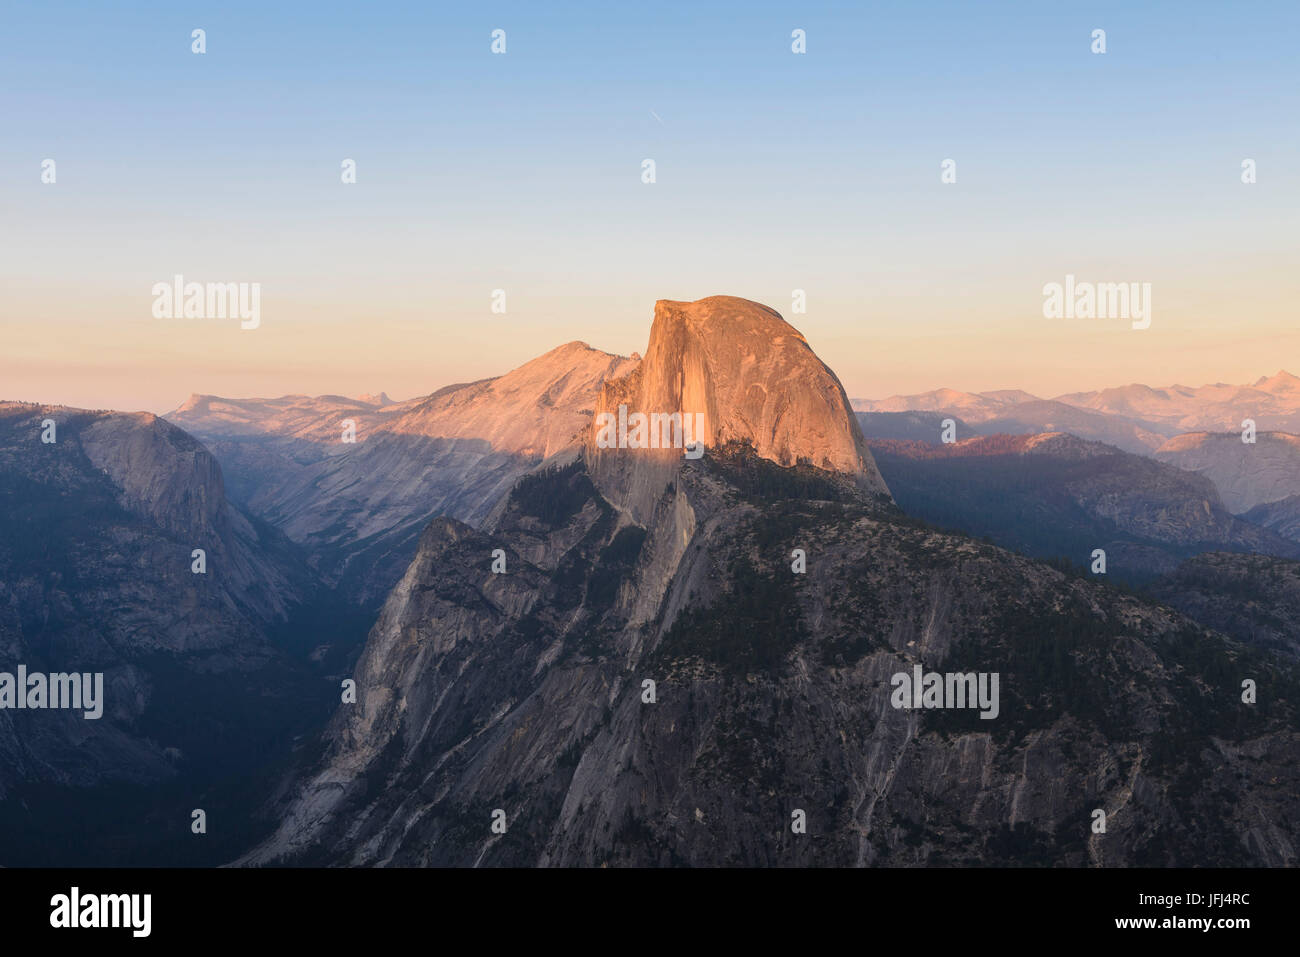 The last sunrays let the point of the Half Dome shine red-orange, the USA, California, Yosemite national park, Half - Stock Image